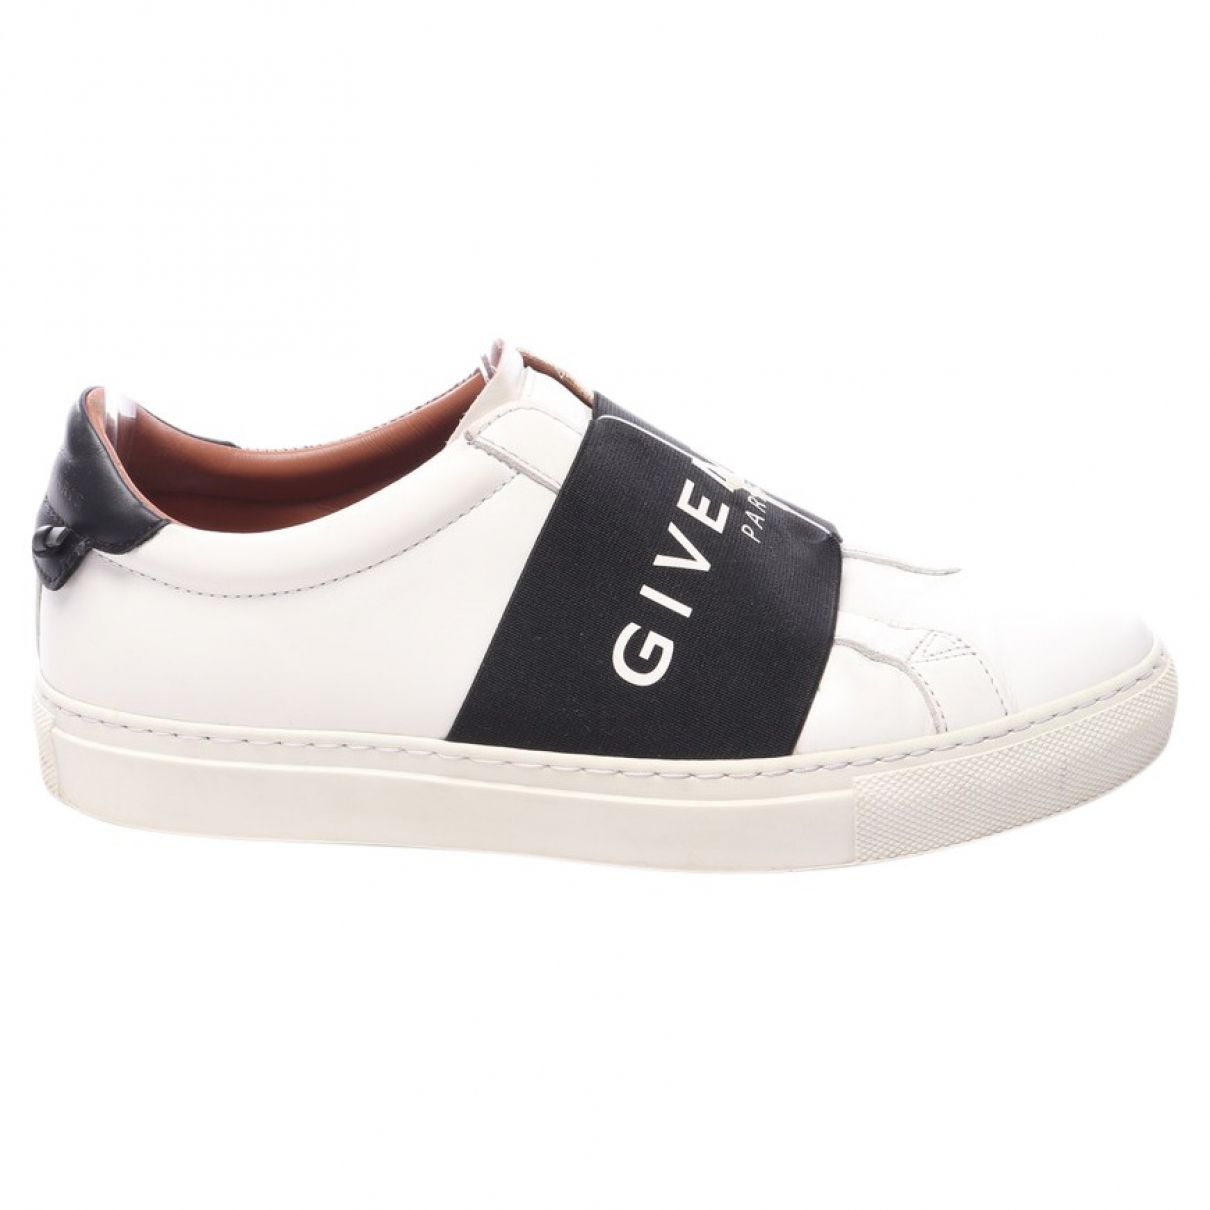 Givenchy N White Leather Flats for Women 40 EU